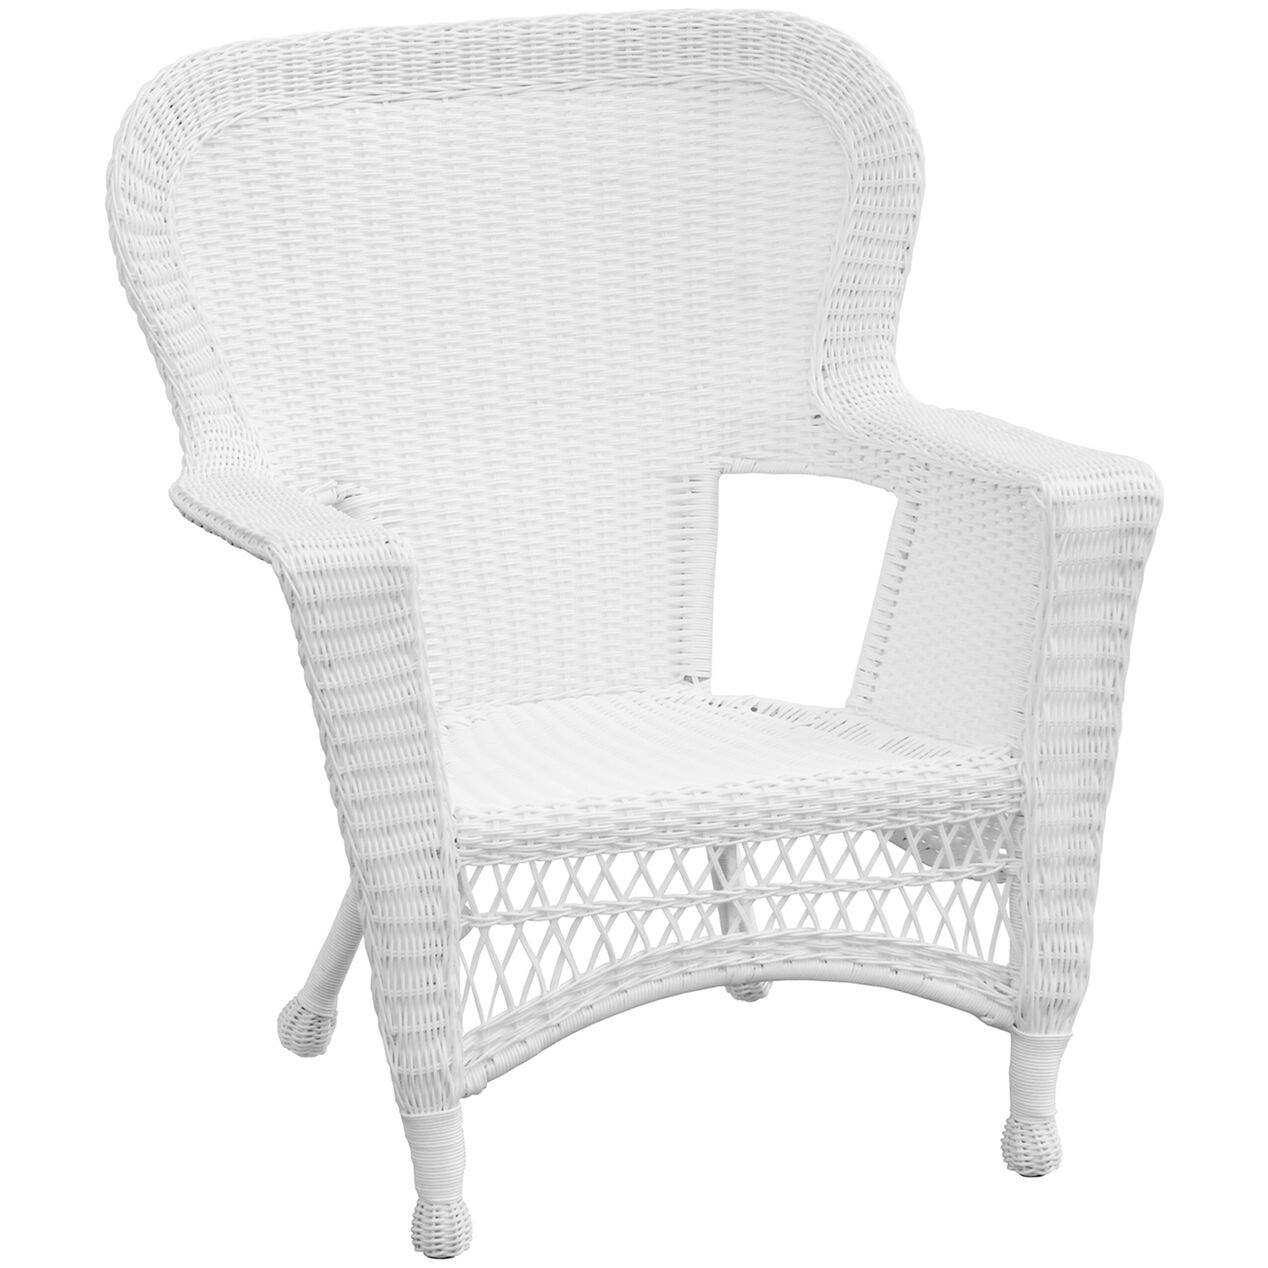 White Wicker Chair At Home